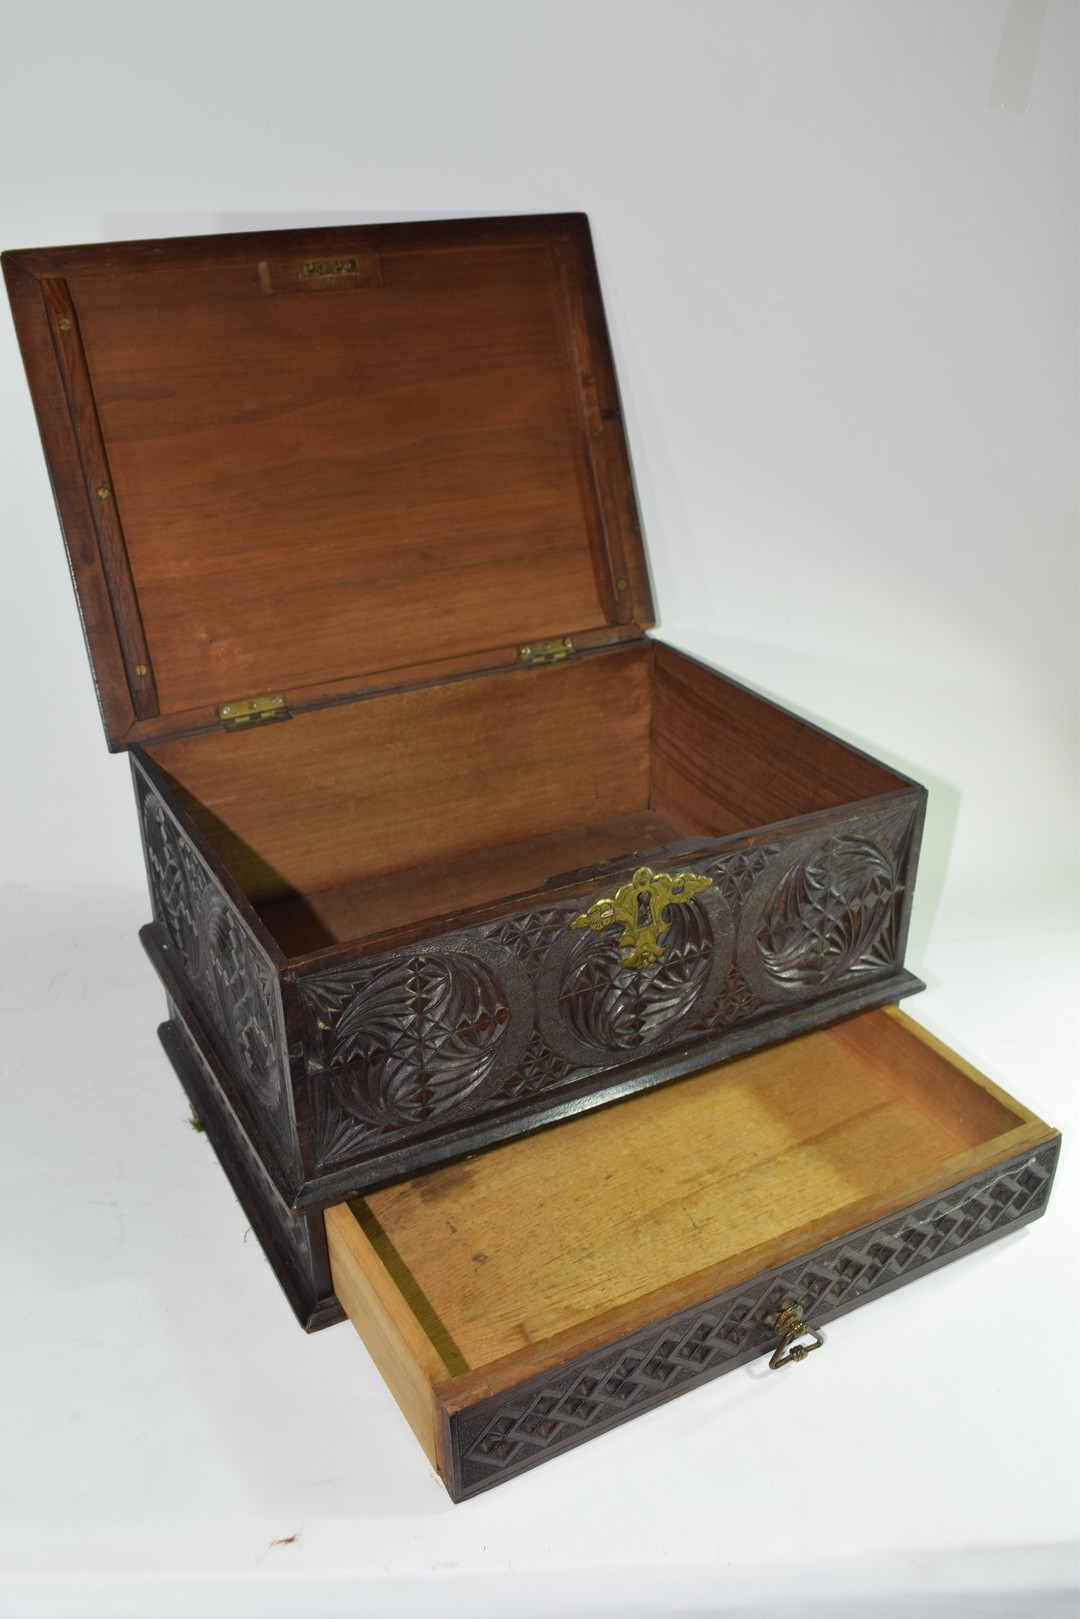 Late 19th/early 20th century Far Eastern table top box